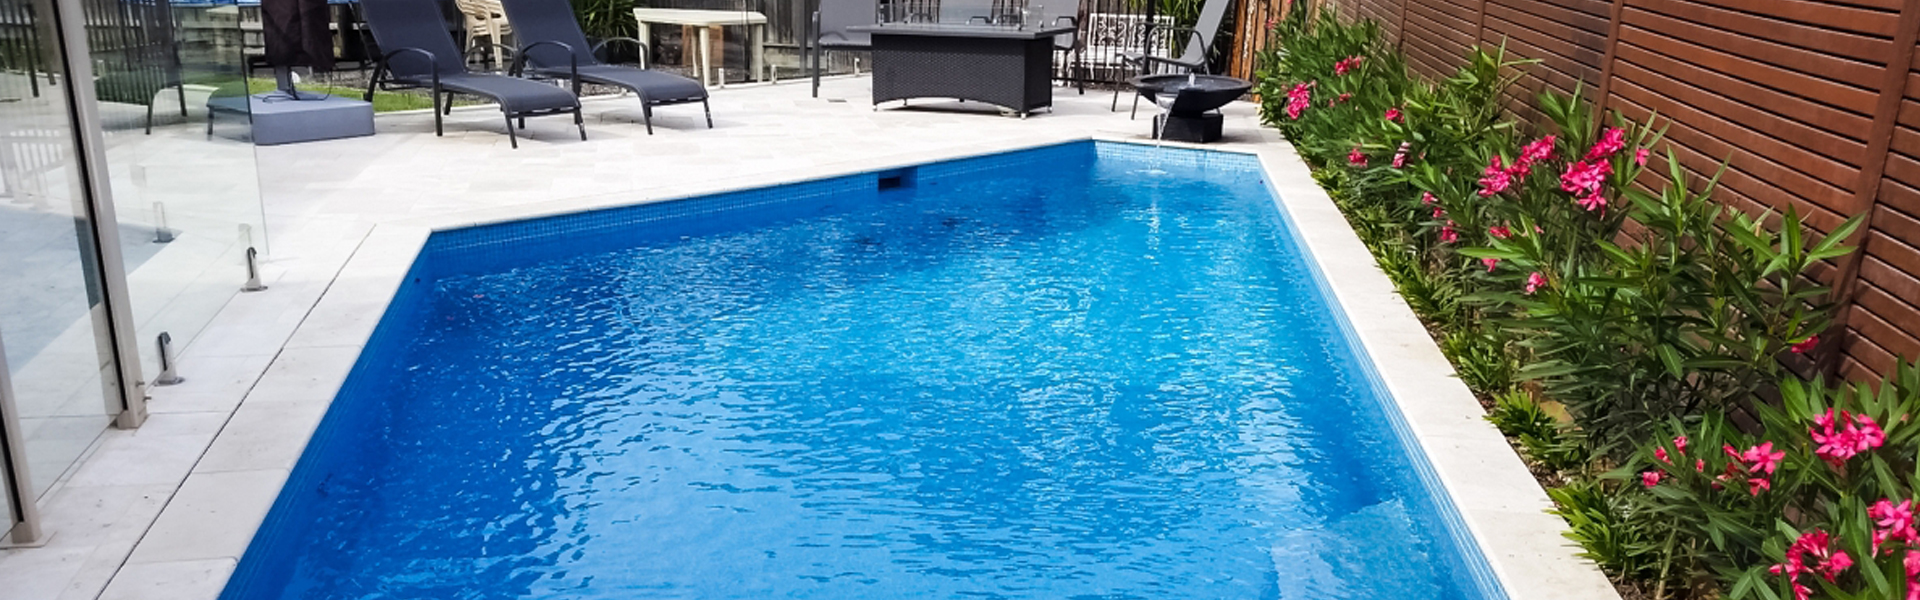 Swimming Pool Renovations | Melbourne Pool Tiling | Pool ...